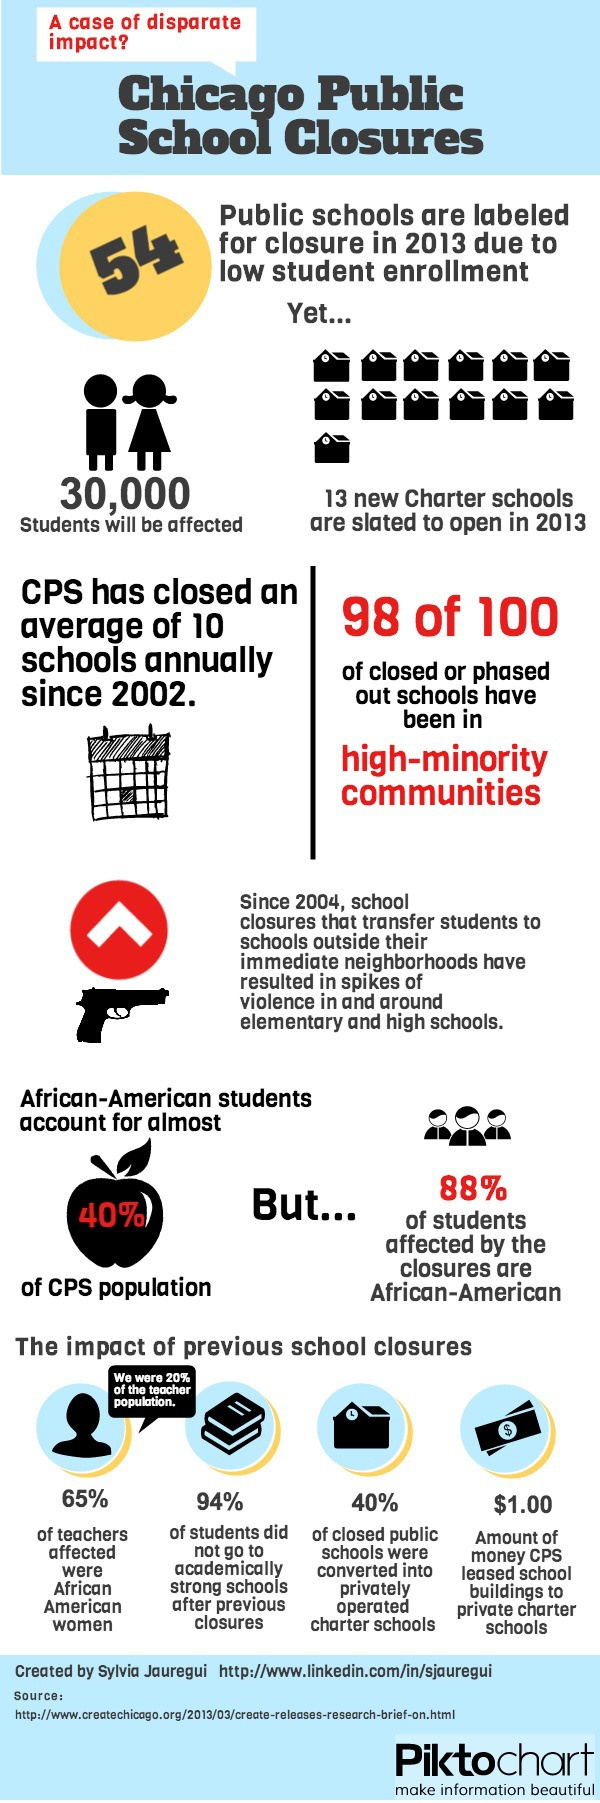 Chicago School Closure Infographic: Is something fishy going on here?